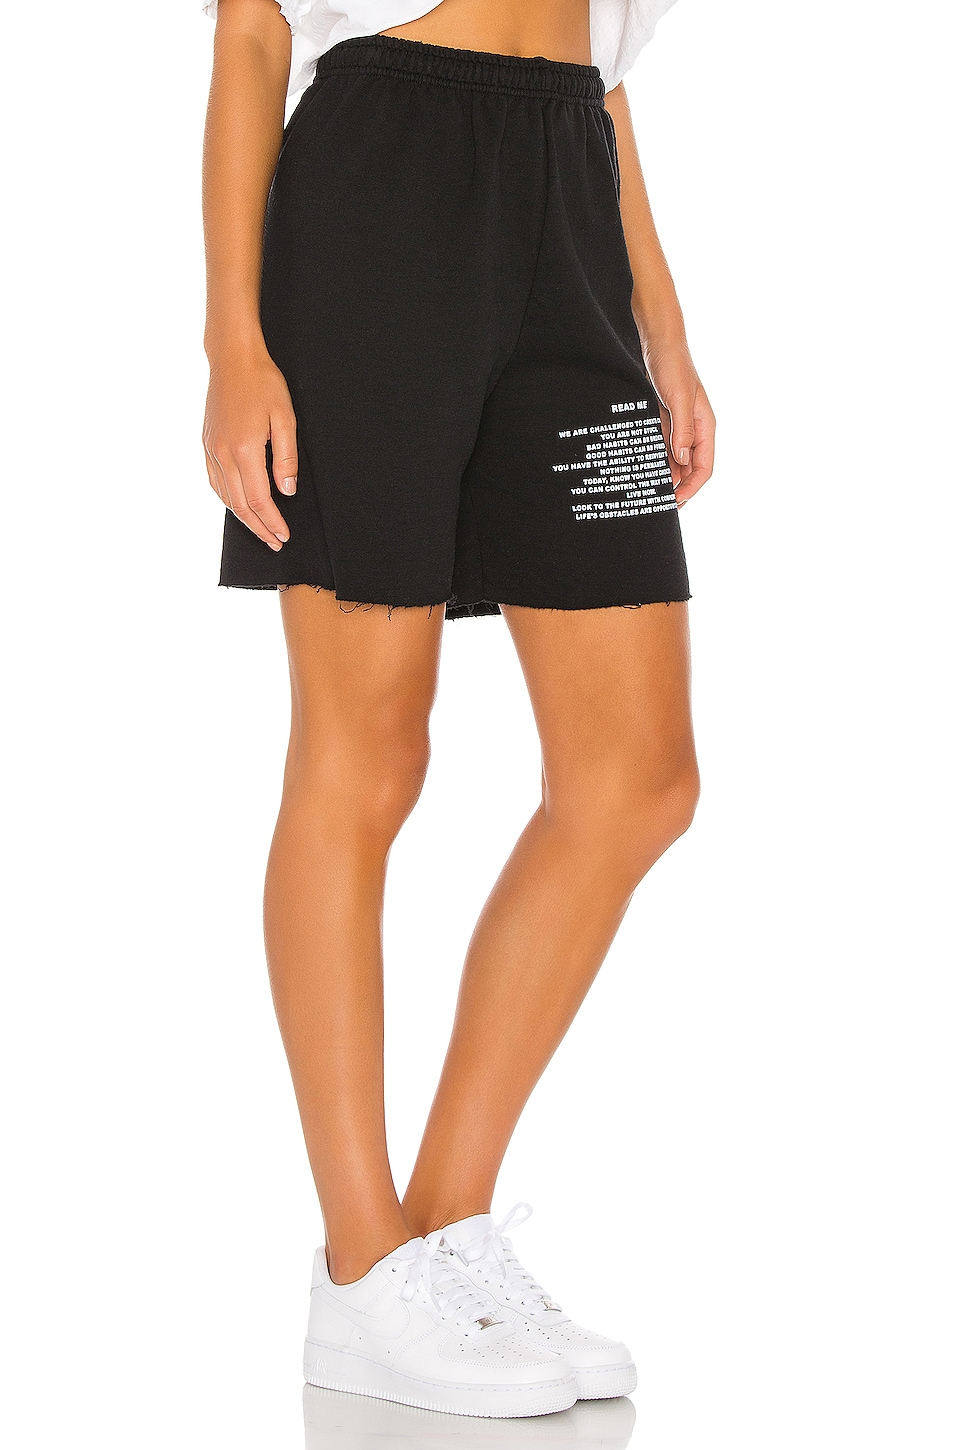 Read Me V2 Sweatshorts, view 2, click to view large image.